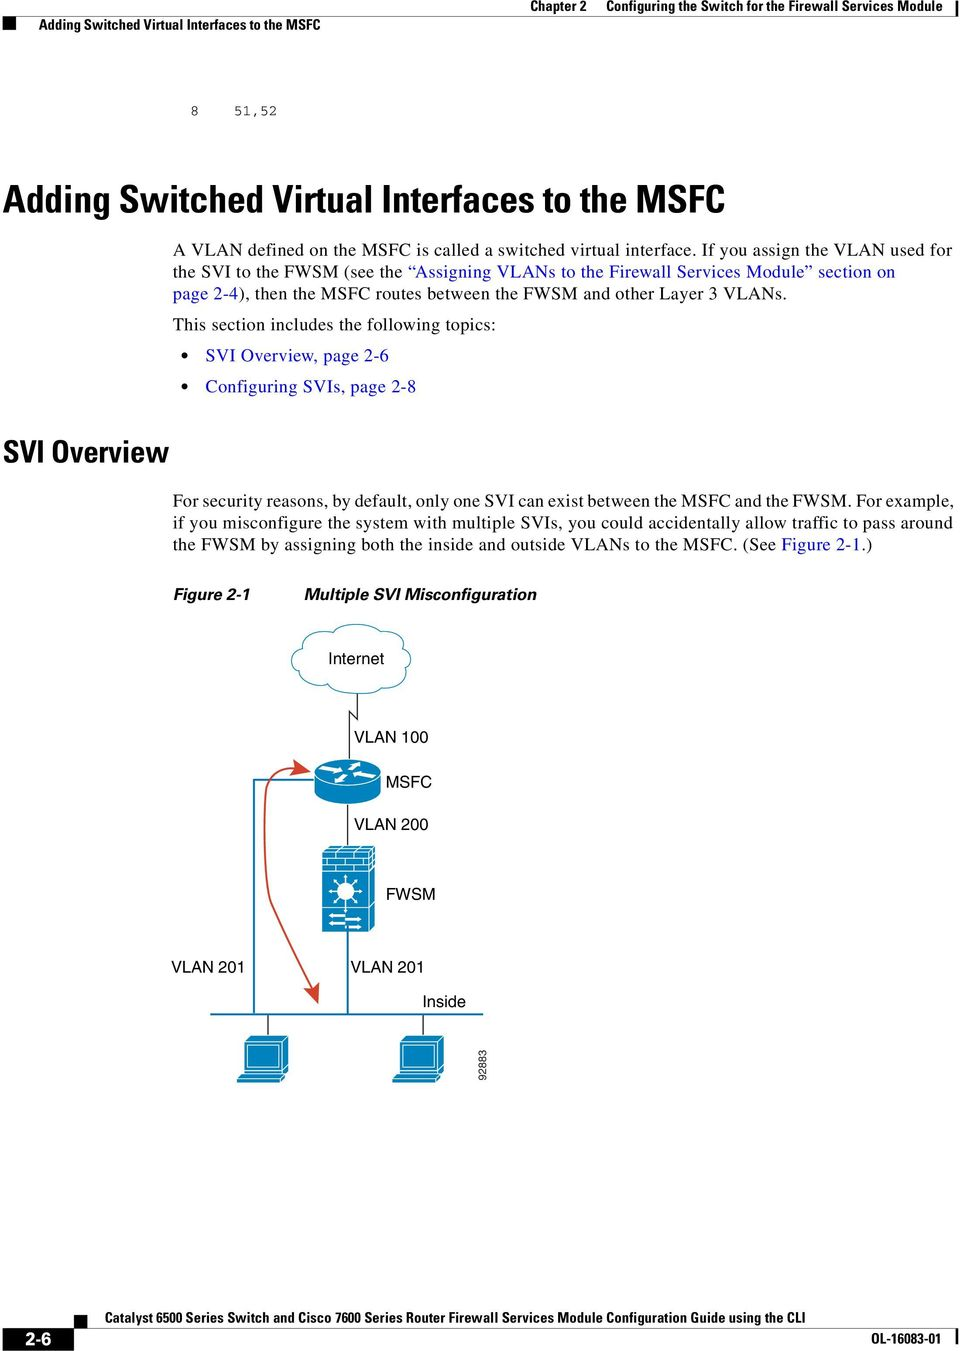 Configuring The Switch For Firewall Services Module Pdf Note Ports On That Are Connected To Asa Must Be In This Section Includes Following Topics Svi Overview Page 2 6 Svis